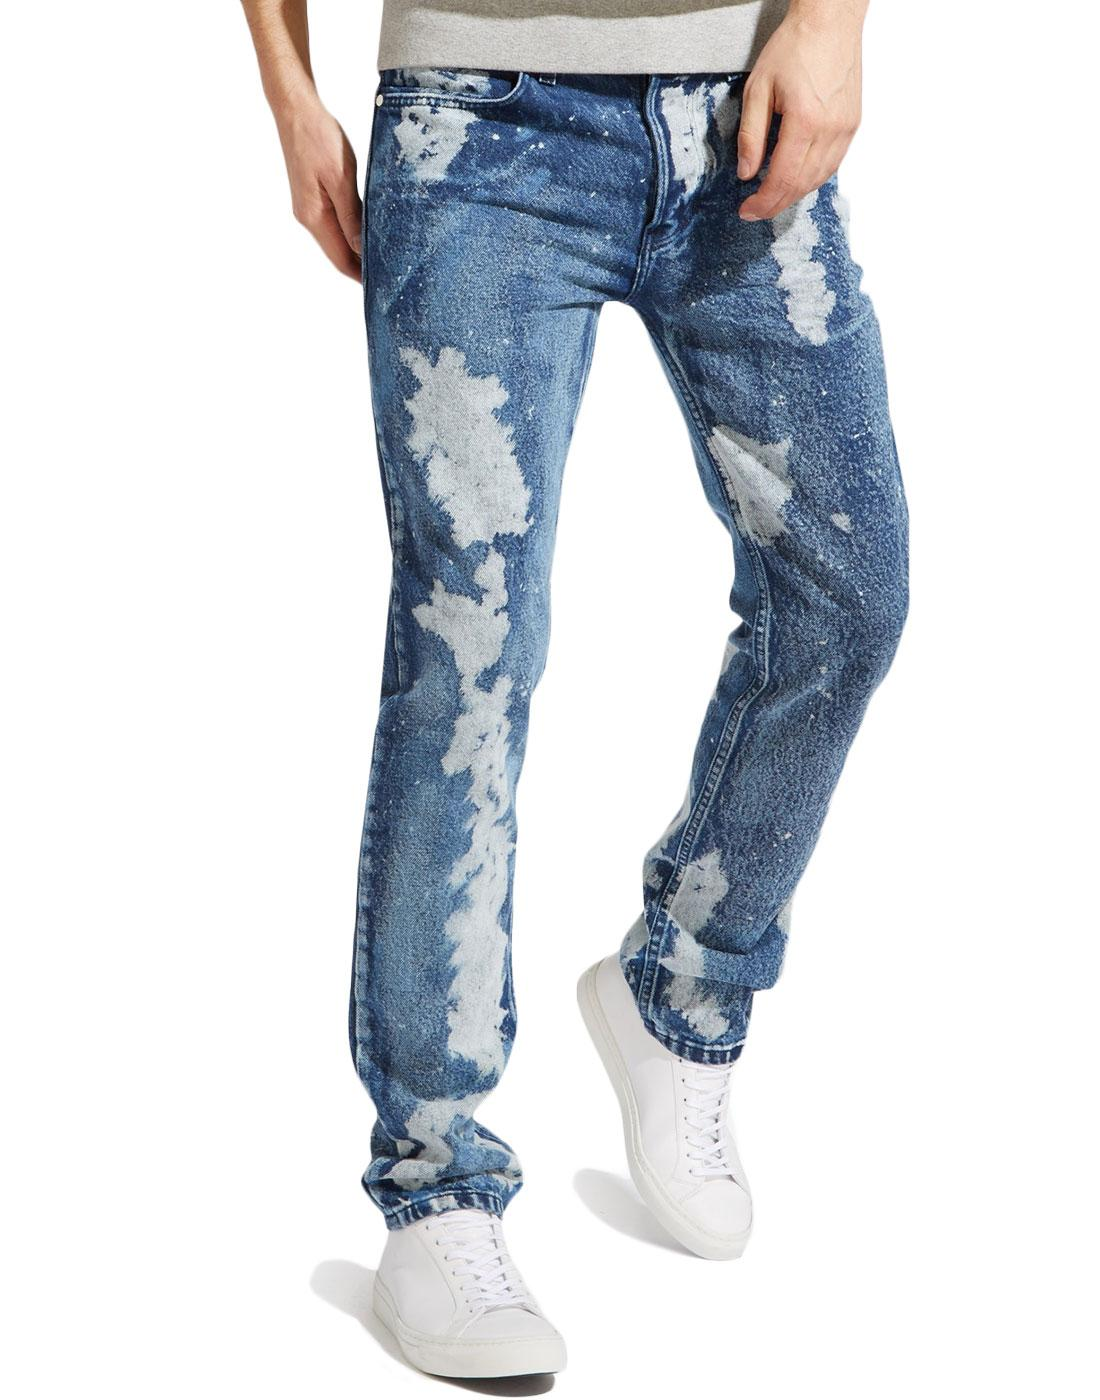 Spencer WRANGLER Retro 70s Bleach Patch Slim Jeans